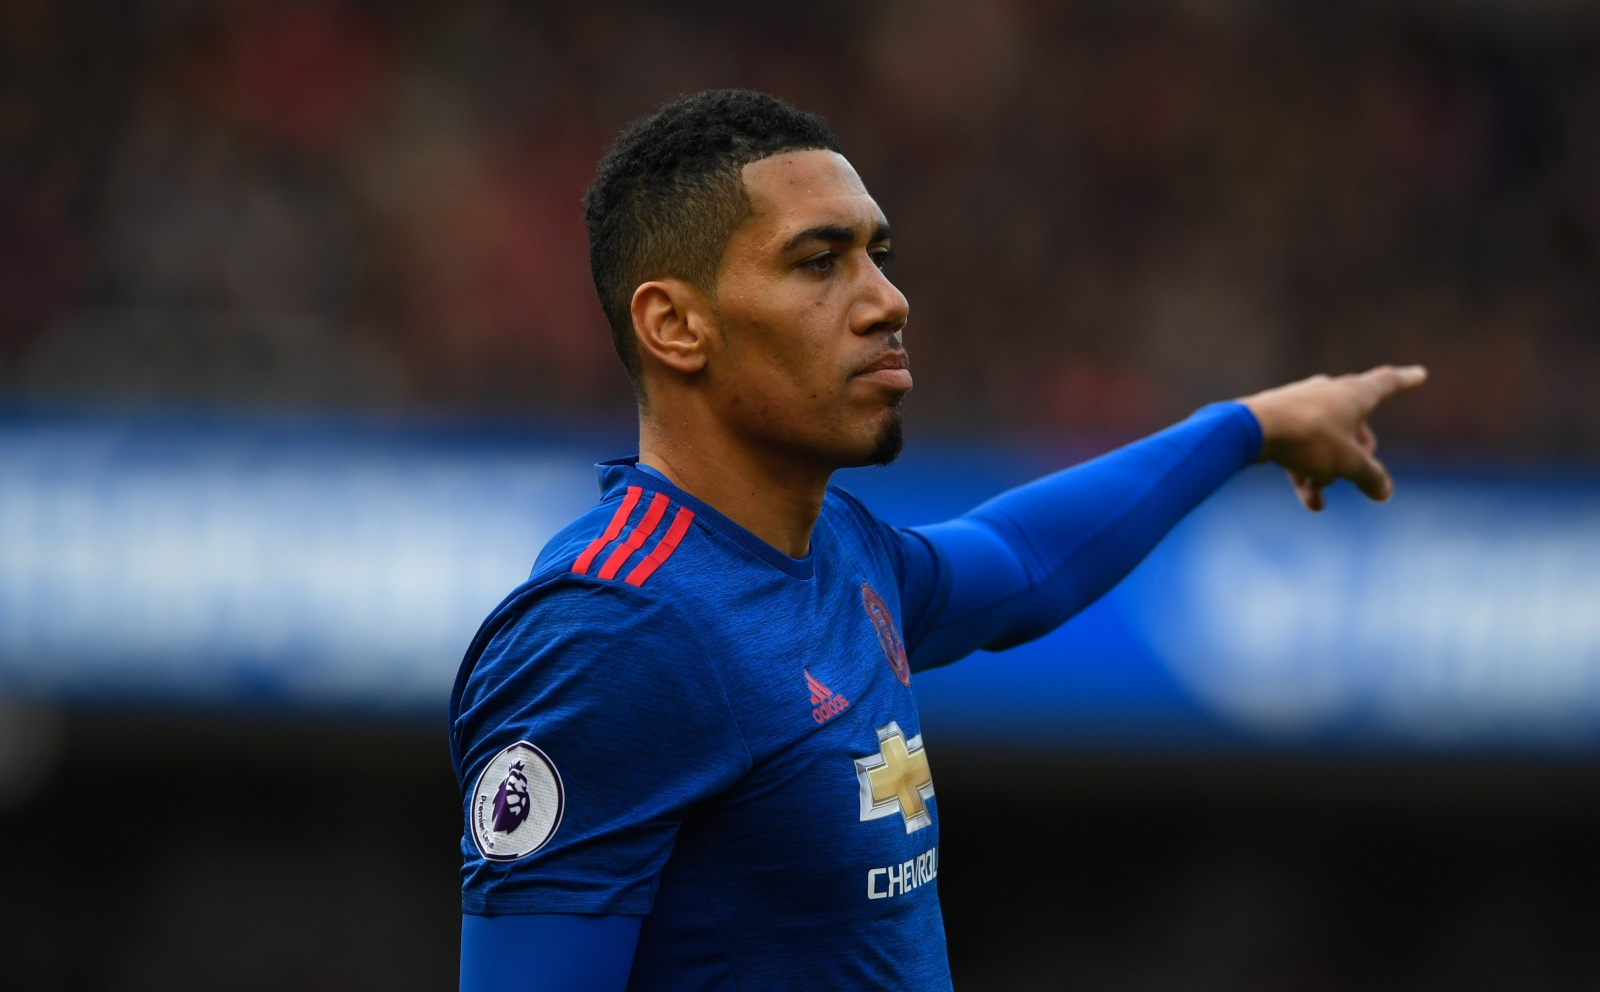 Transfer window: Manchester United defender Chris Smalling reportedly a Tottenham Hotspur target